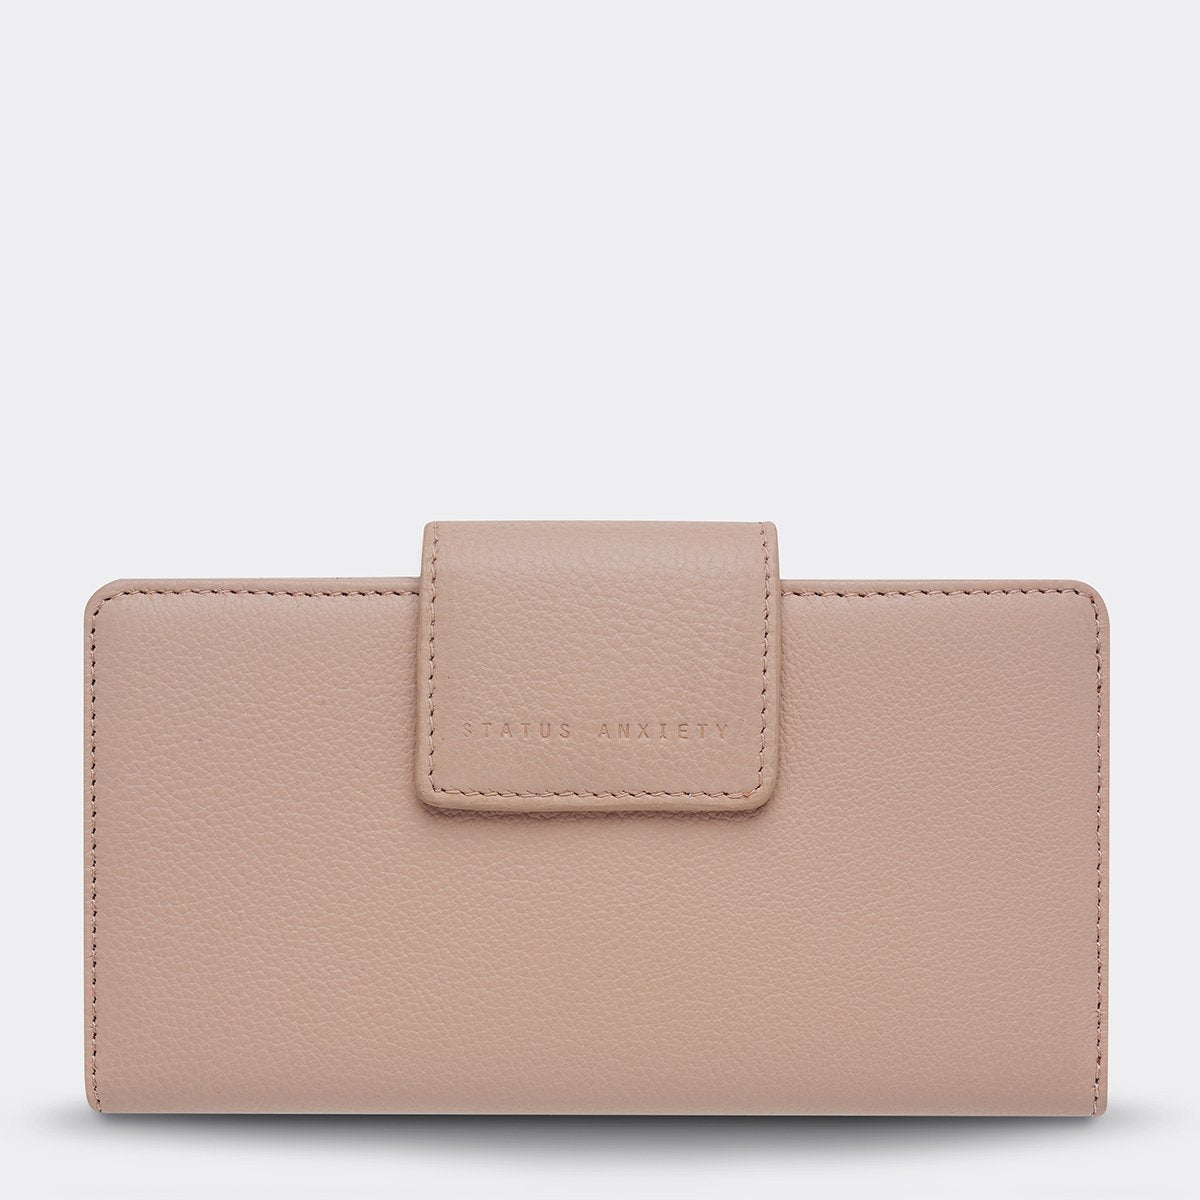 Status Anxiety Ruins Wallet - Dusty Pink